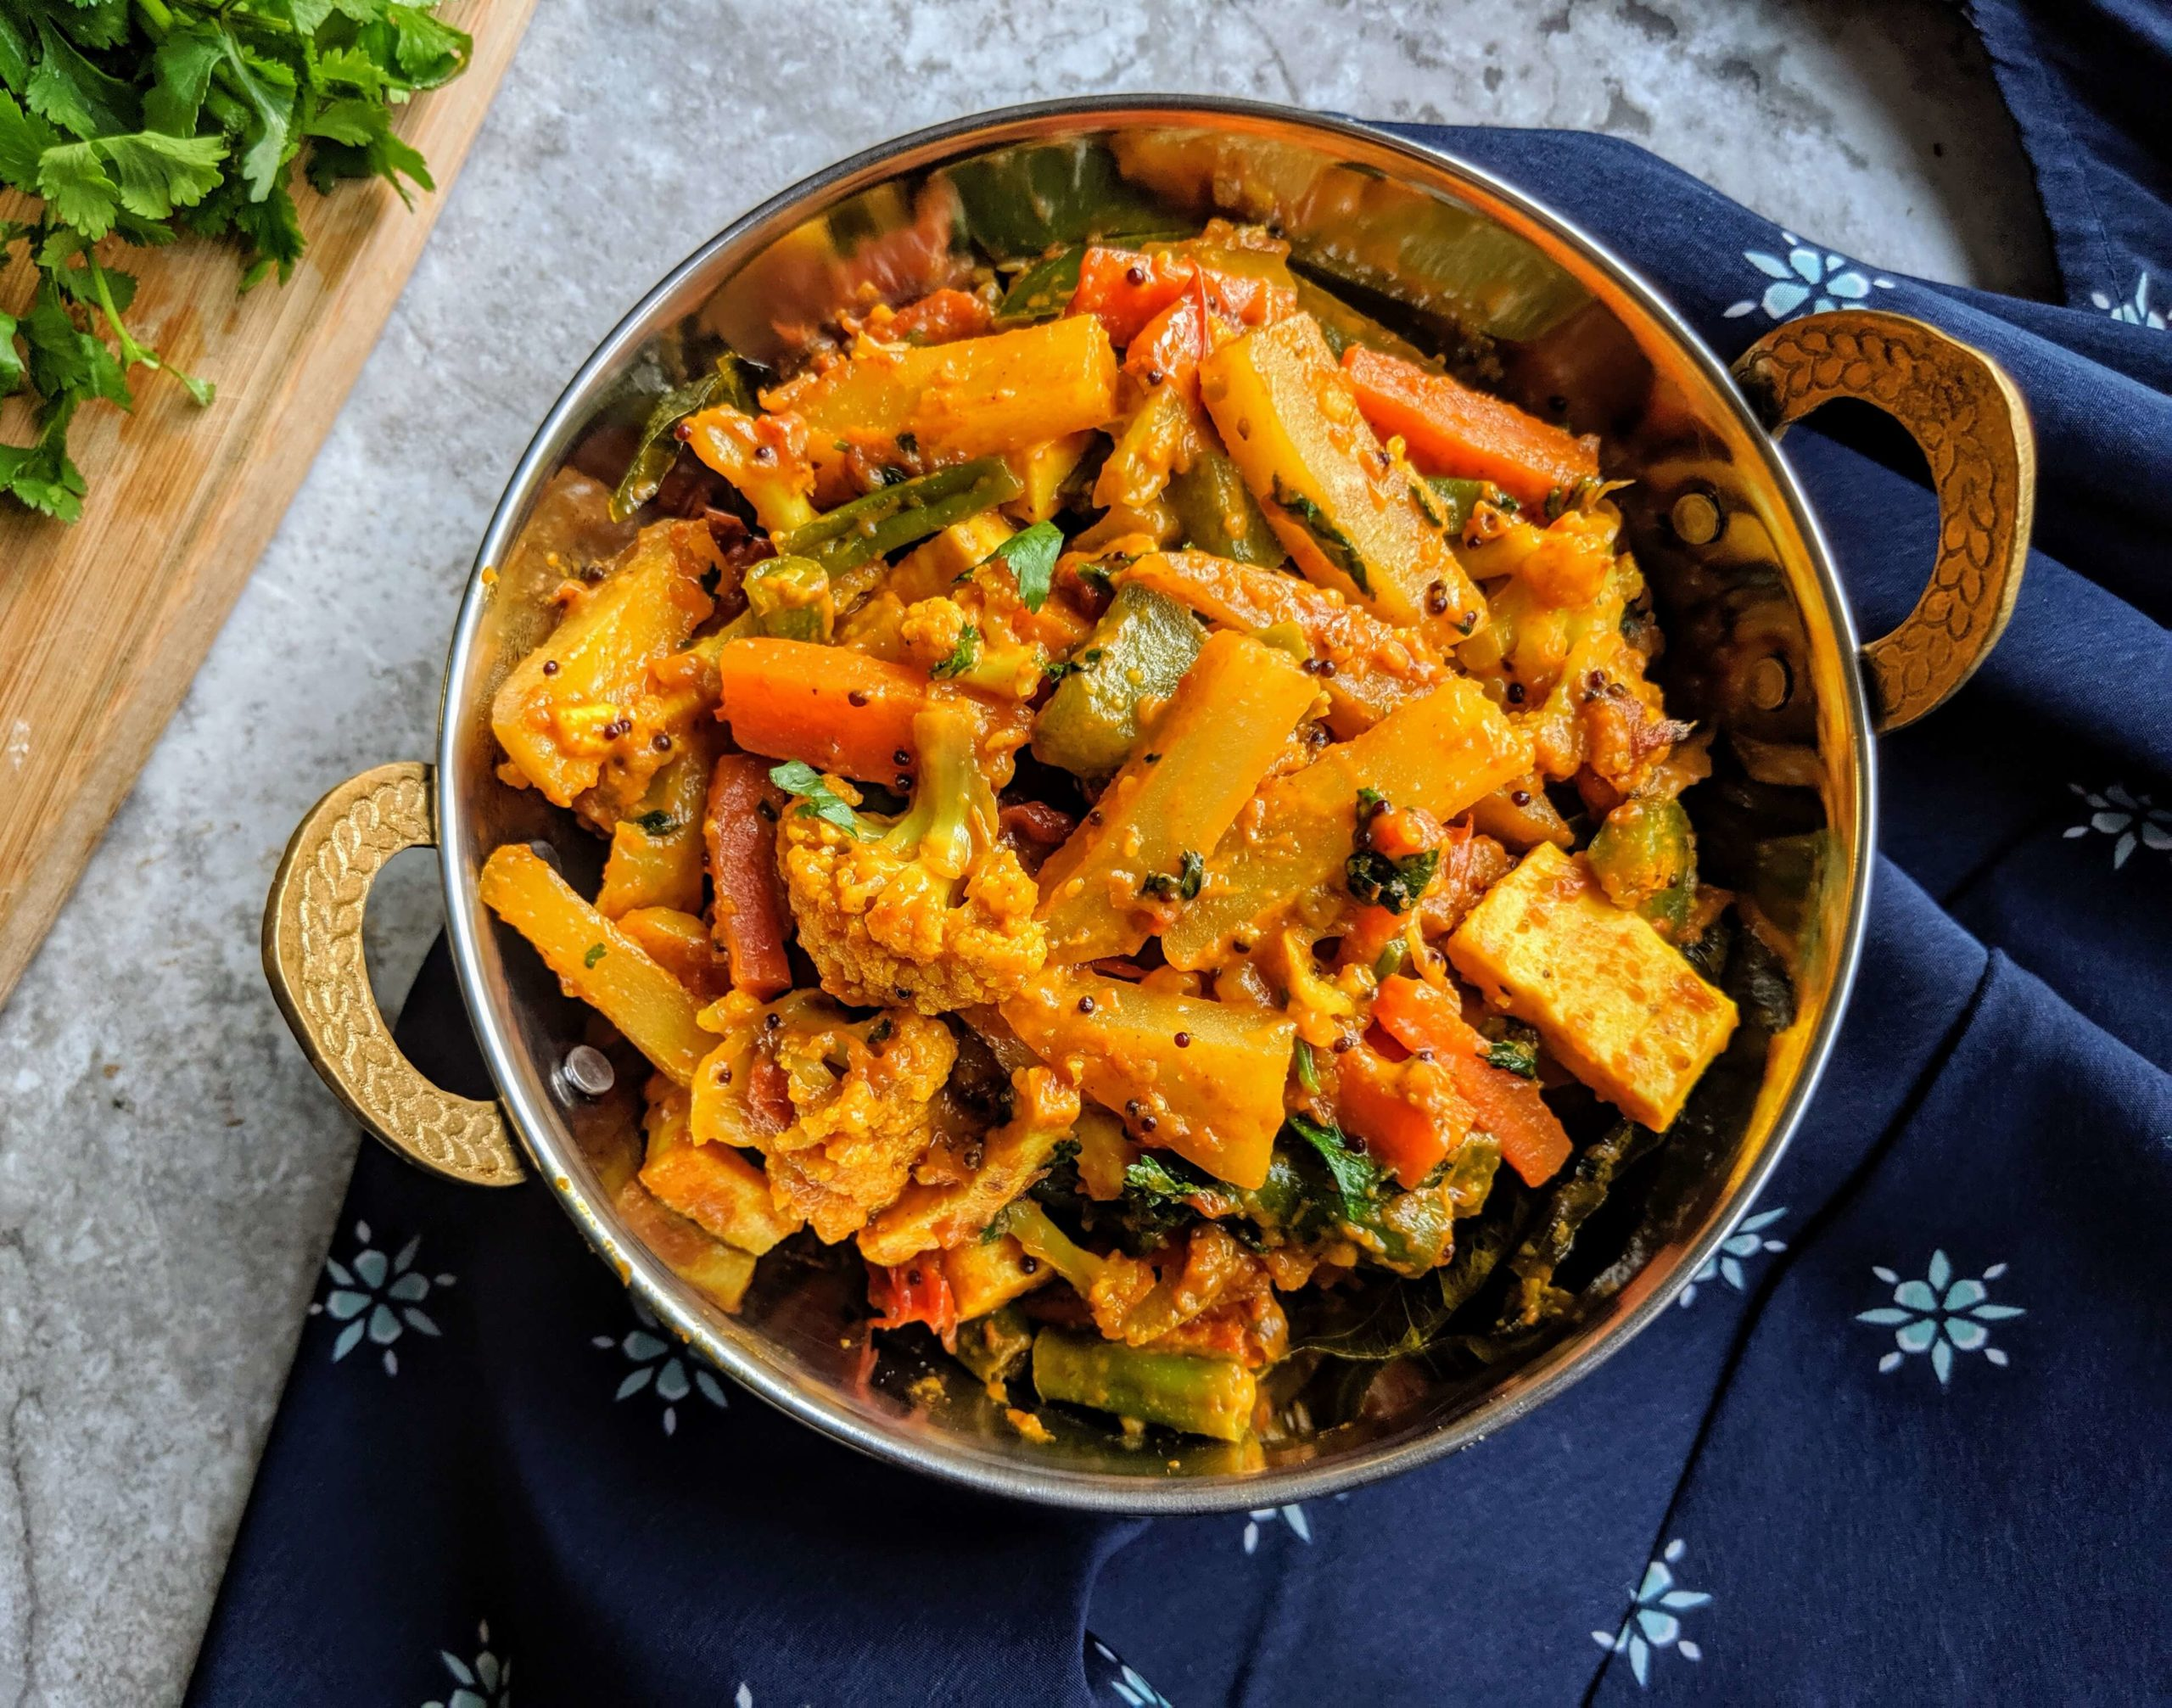 Vegetable Jalfrezi is a semi-dry curry made with a tangy colorful blend of stir fried mixed vegetables cooked in a thick spicy tomato base.